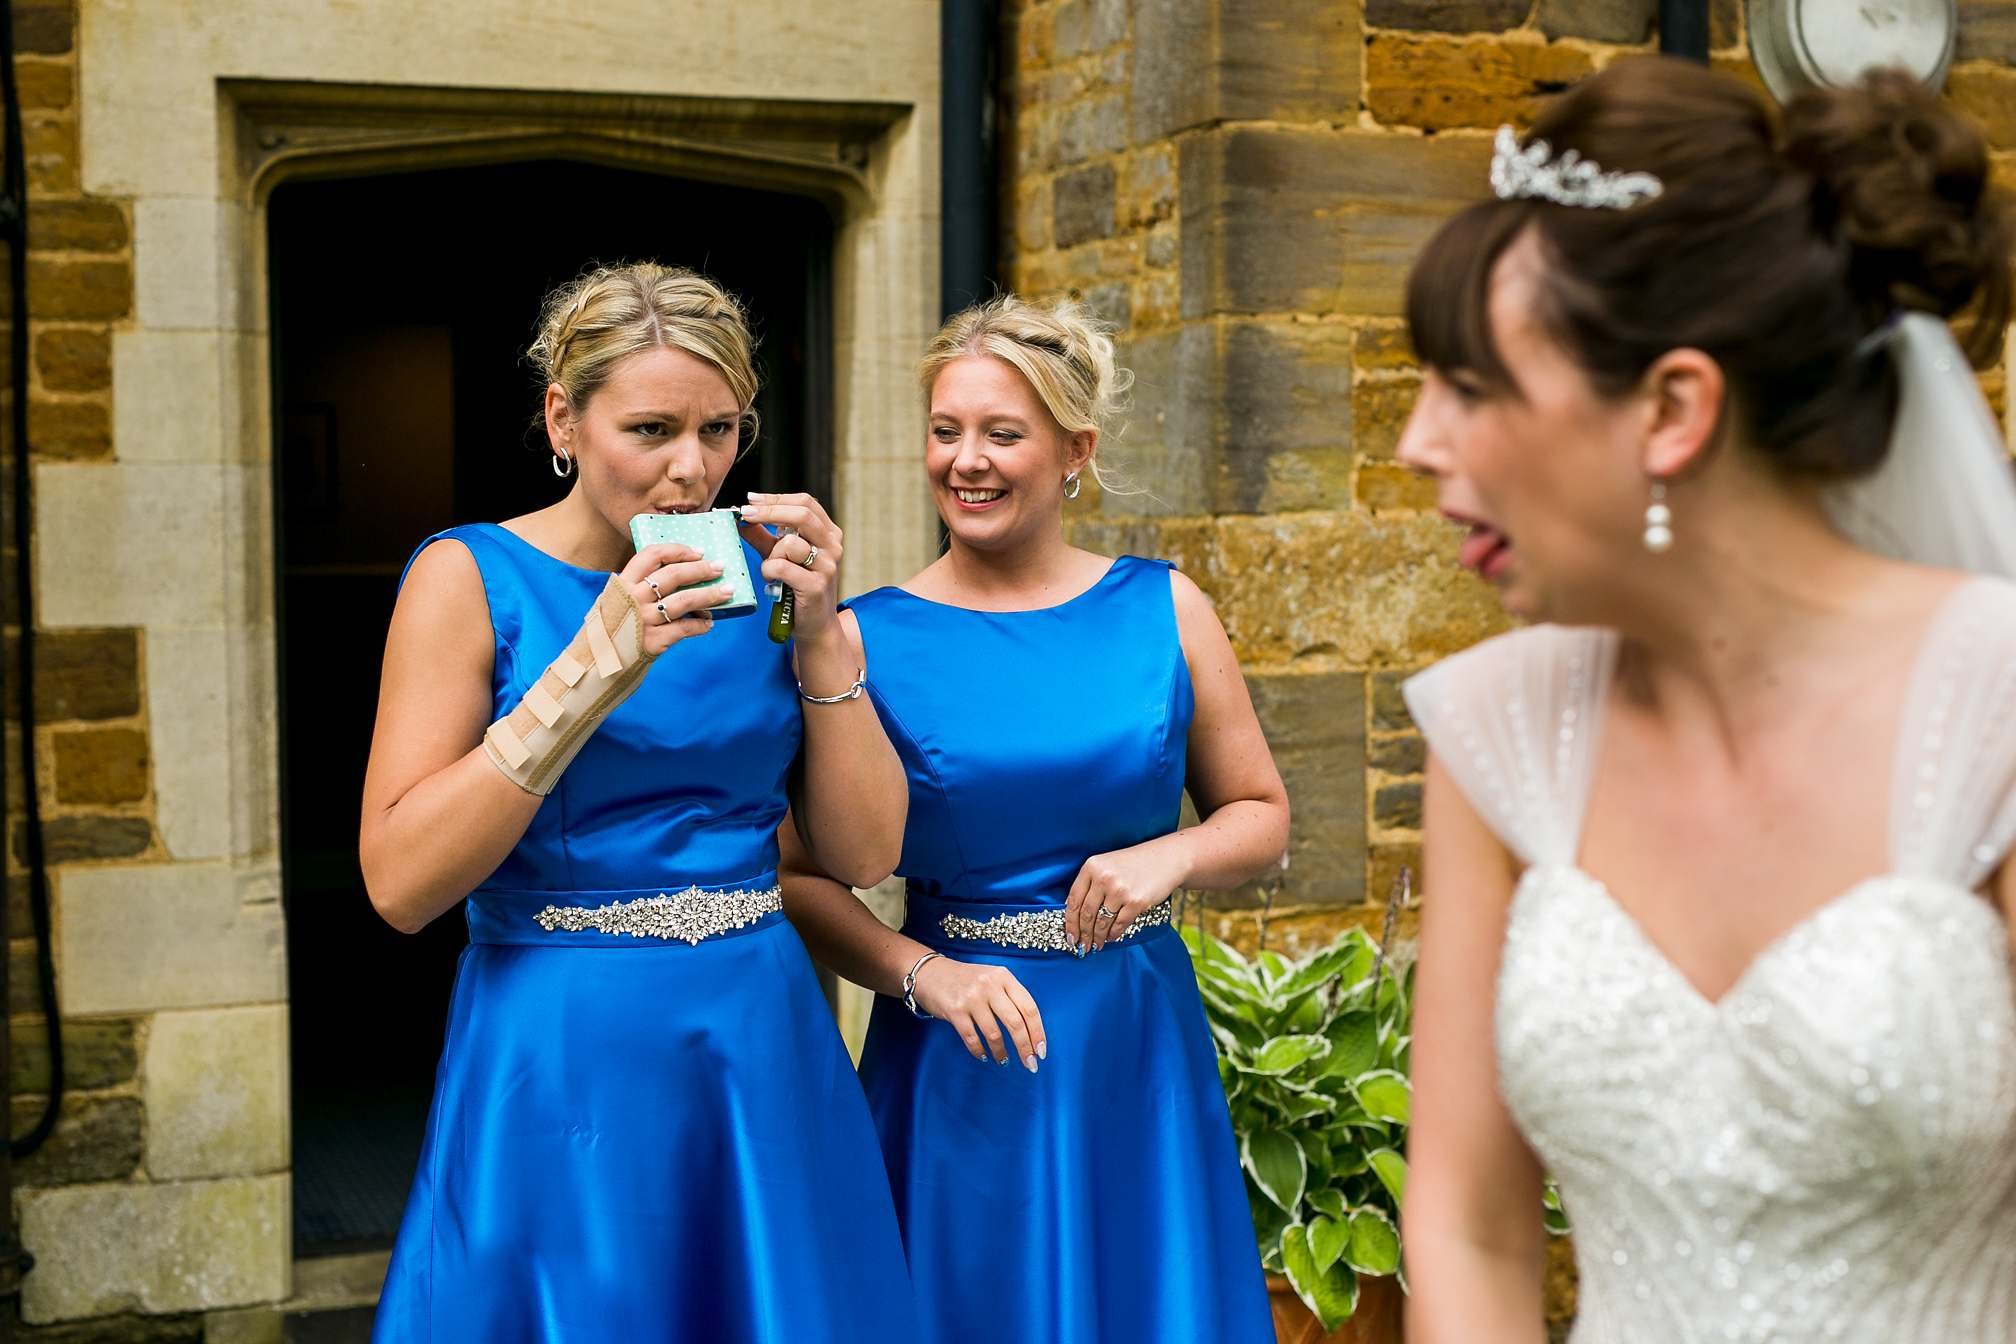 Funny Bridesmaid Drinking Booze